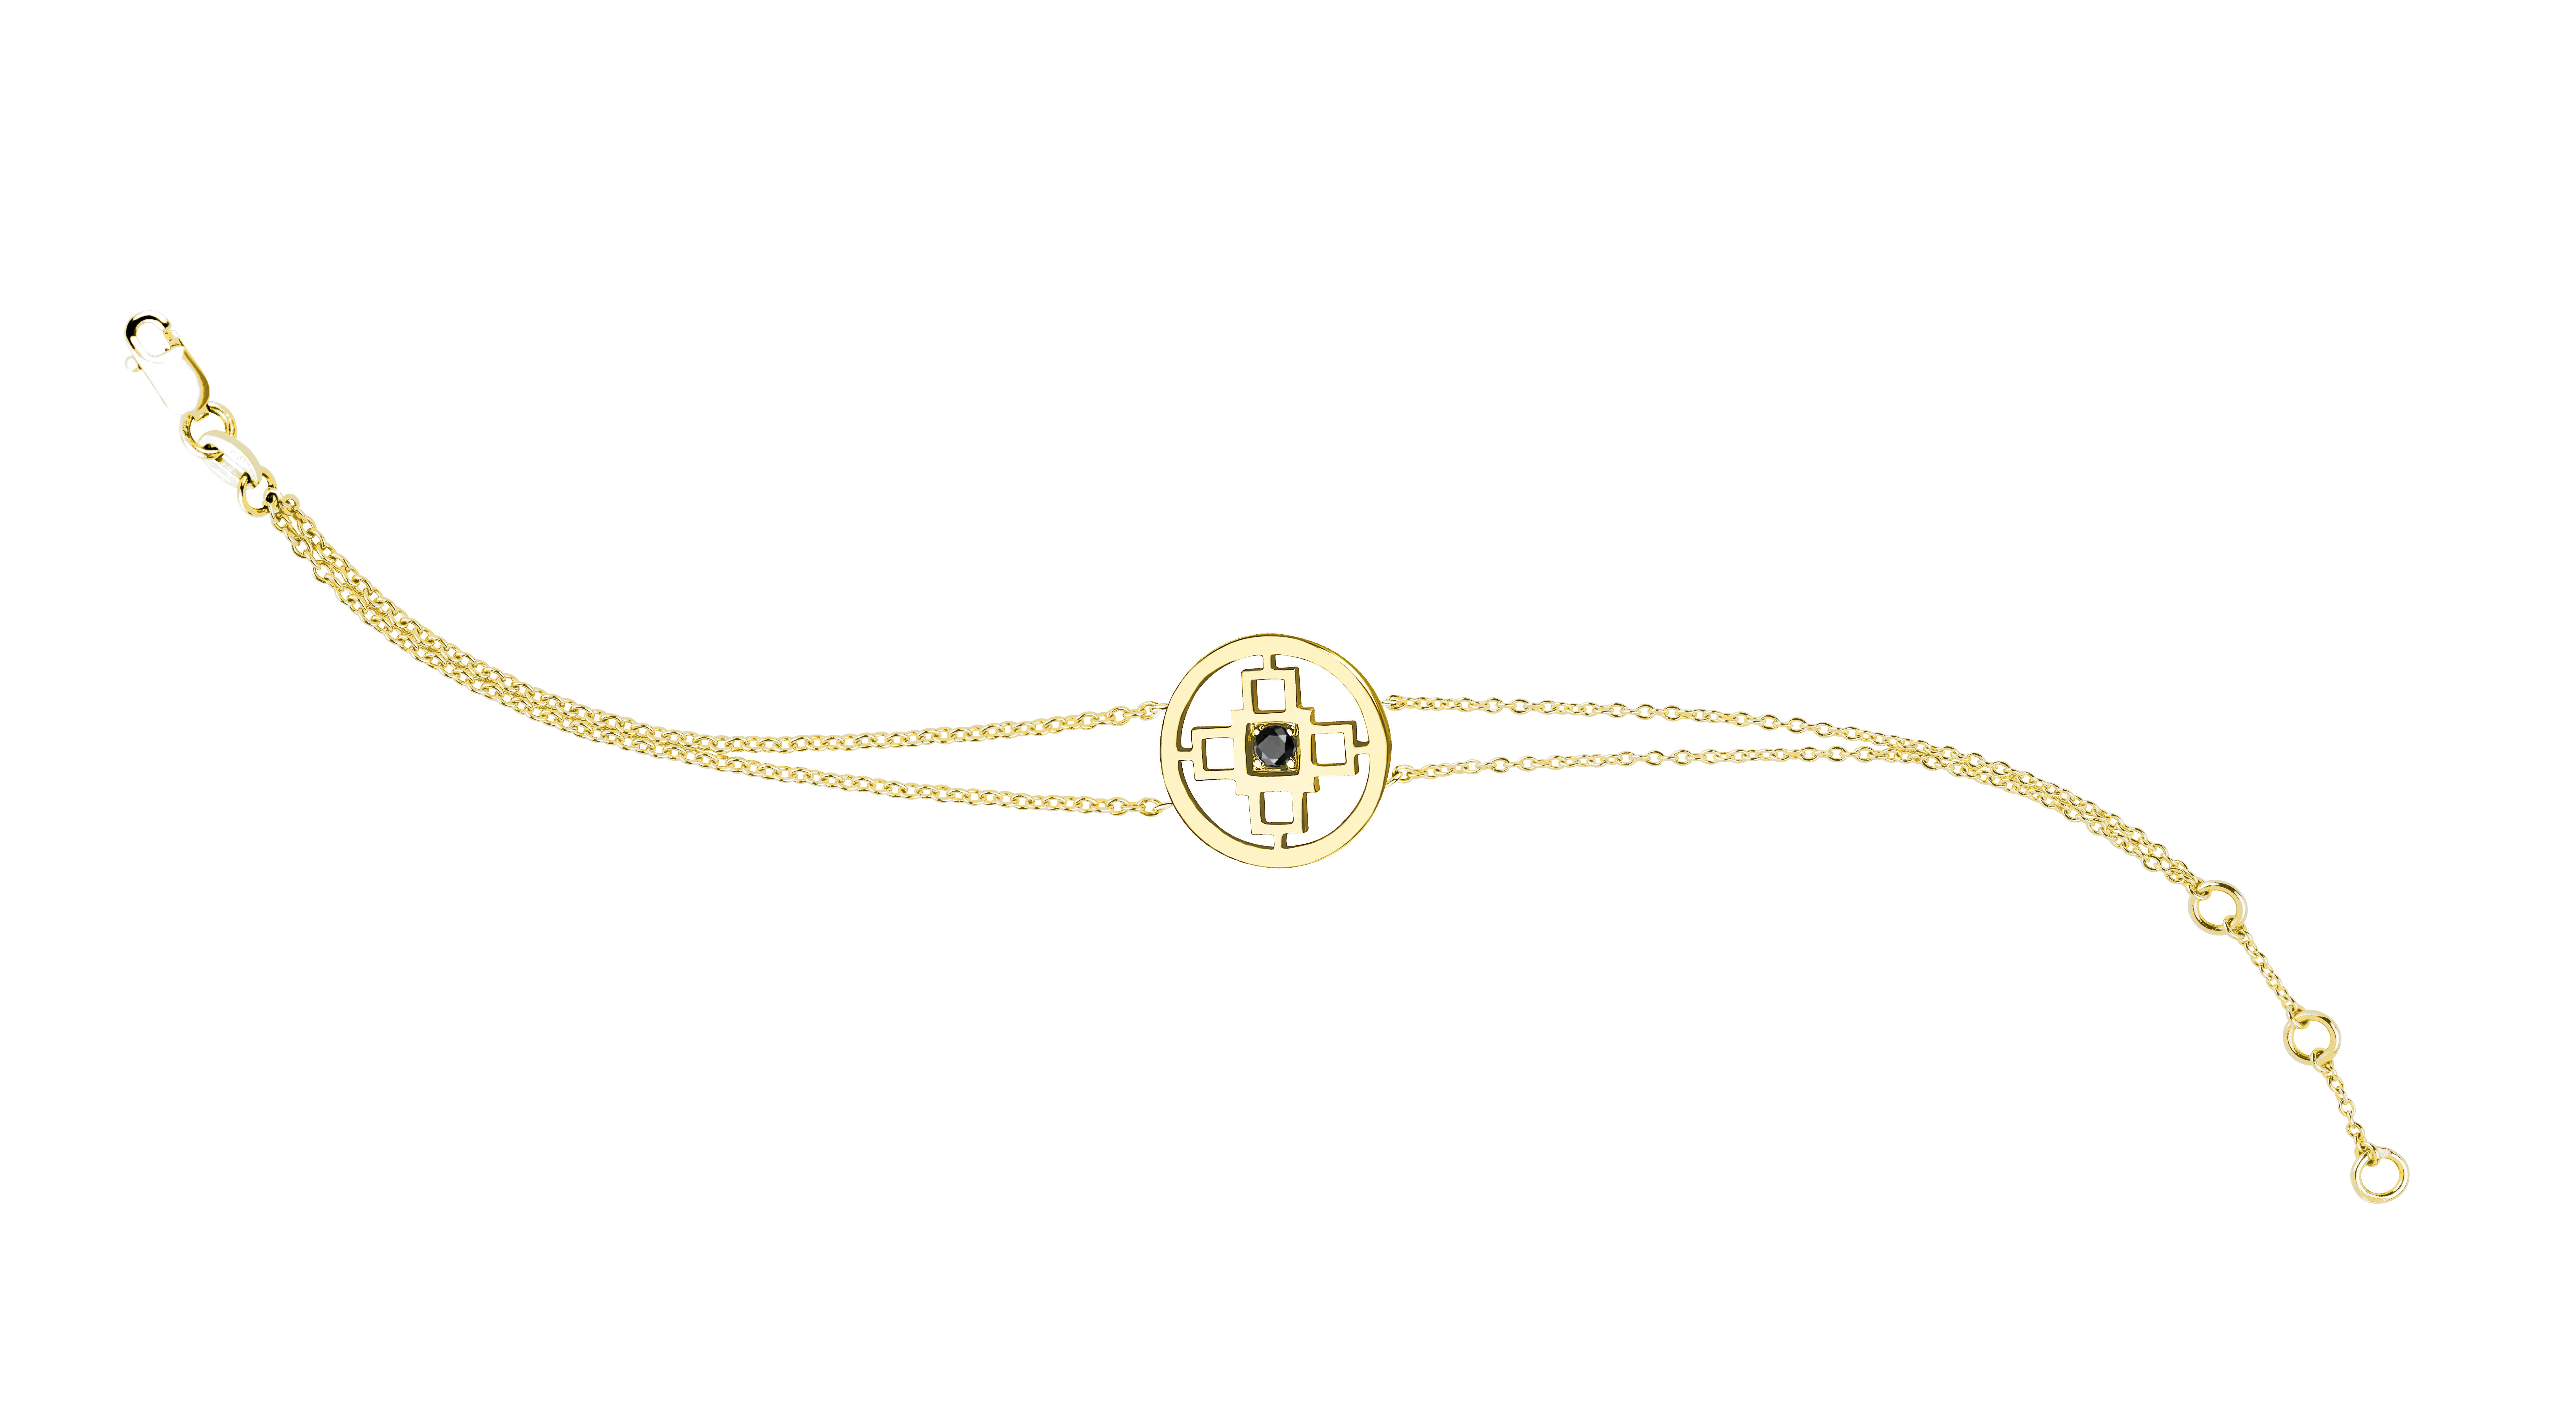 Intelligence Bakwani7 Or diamant central noir – Bracelet double